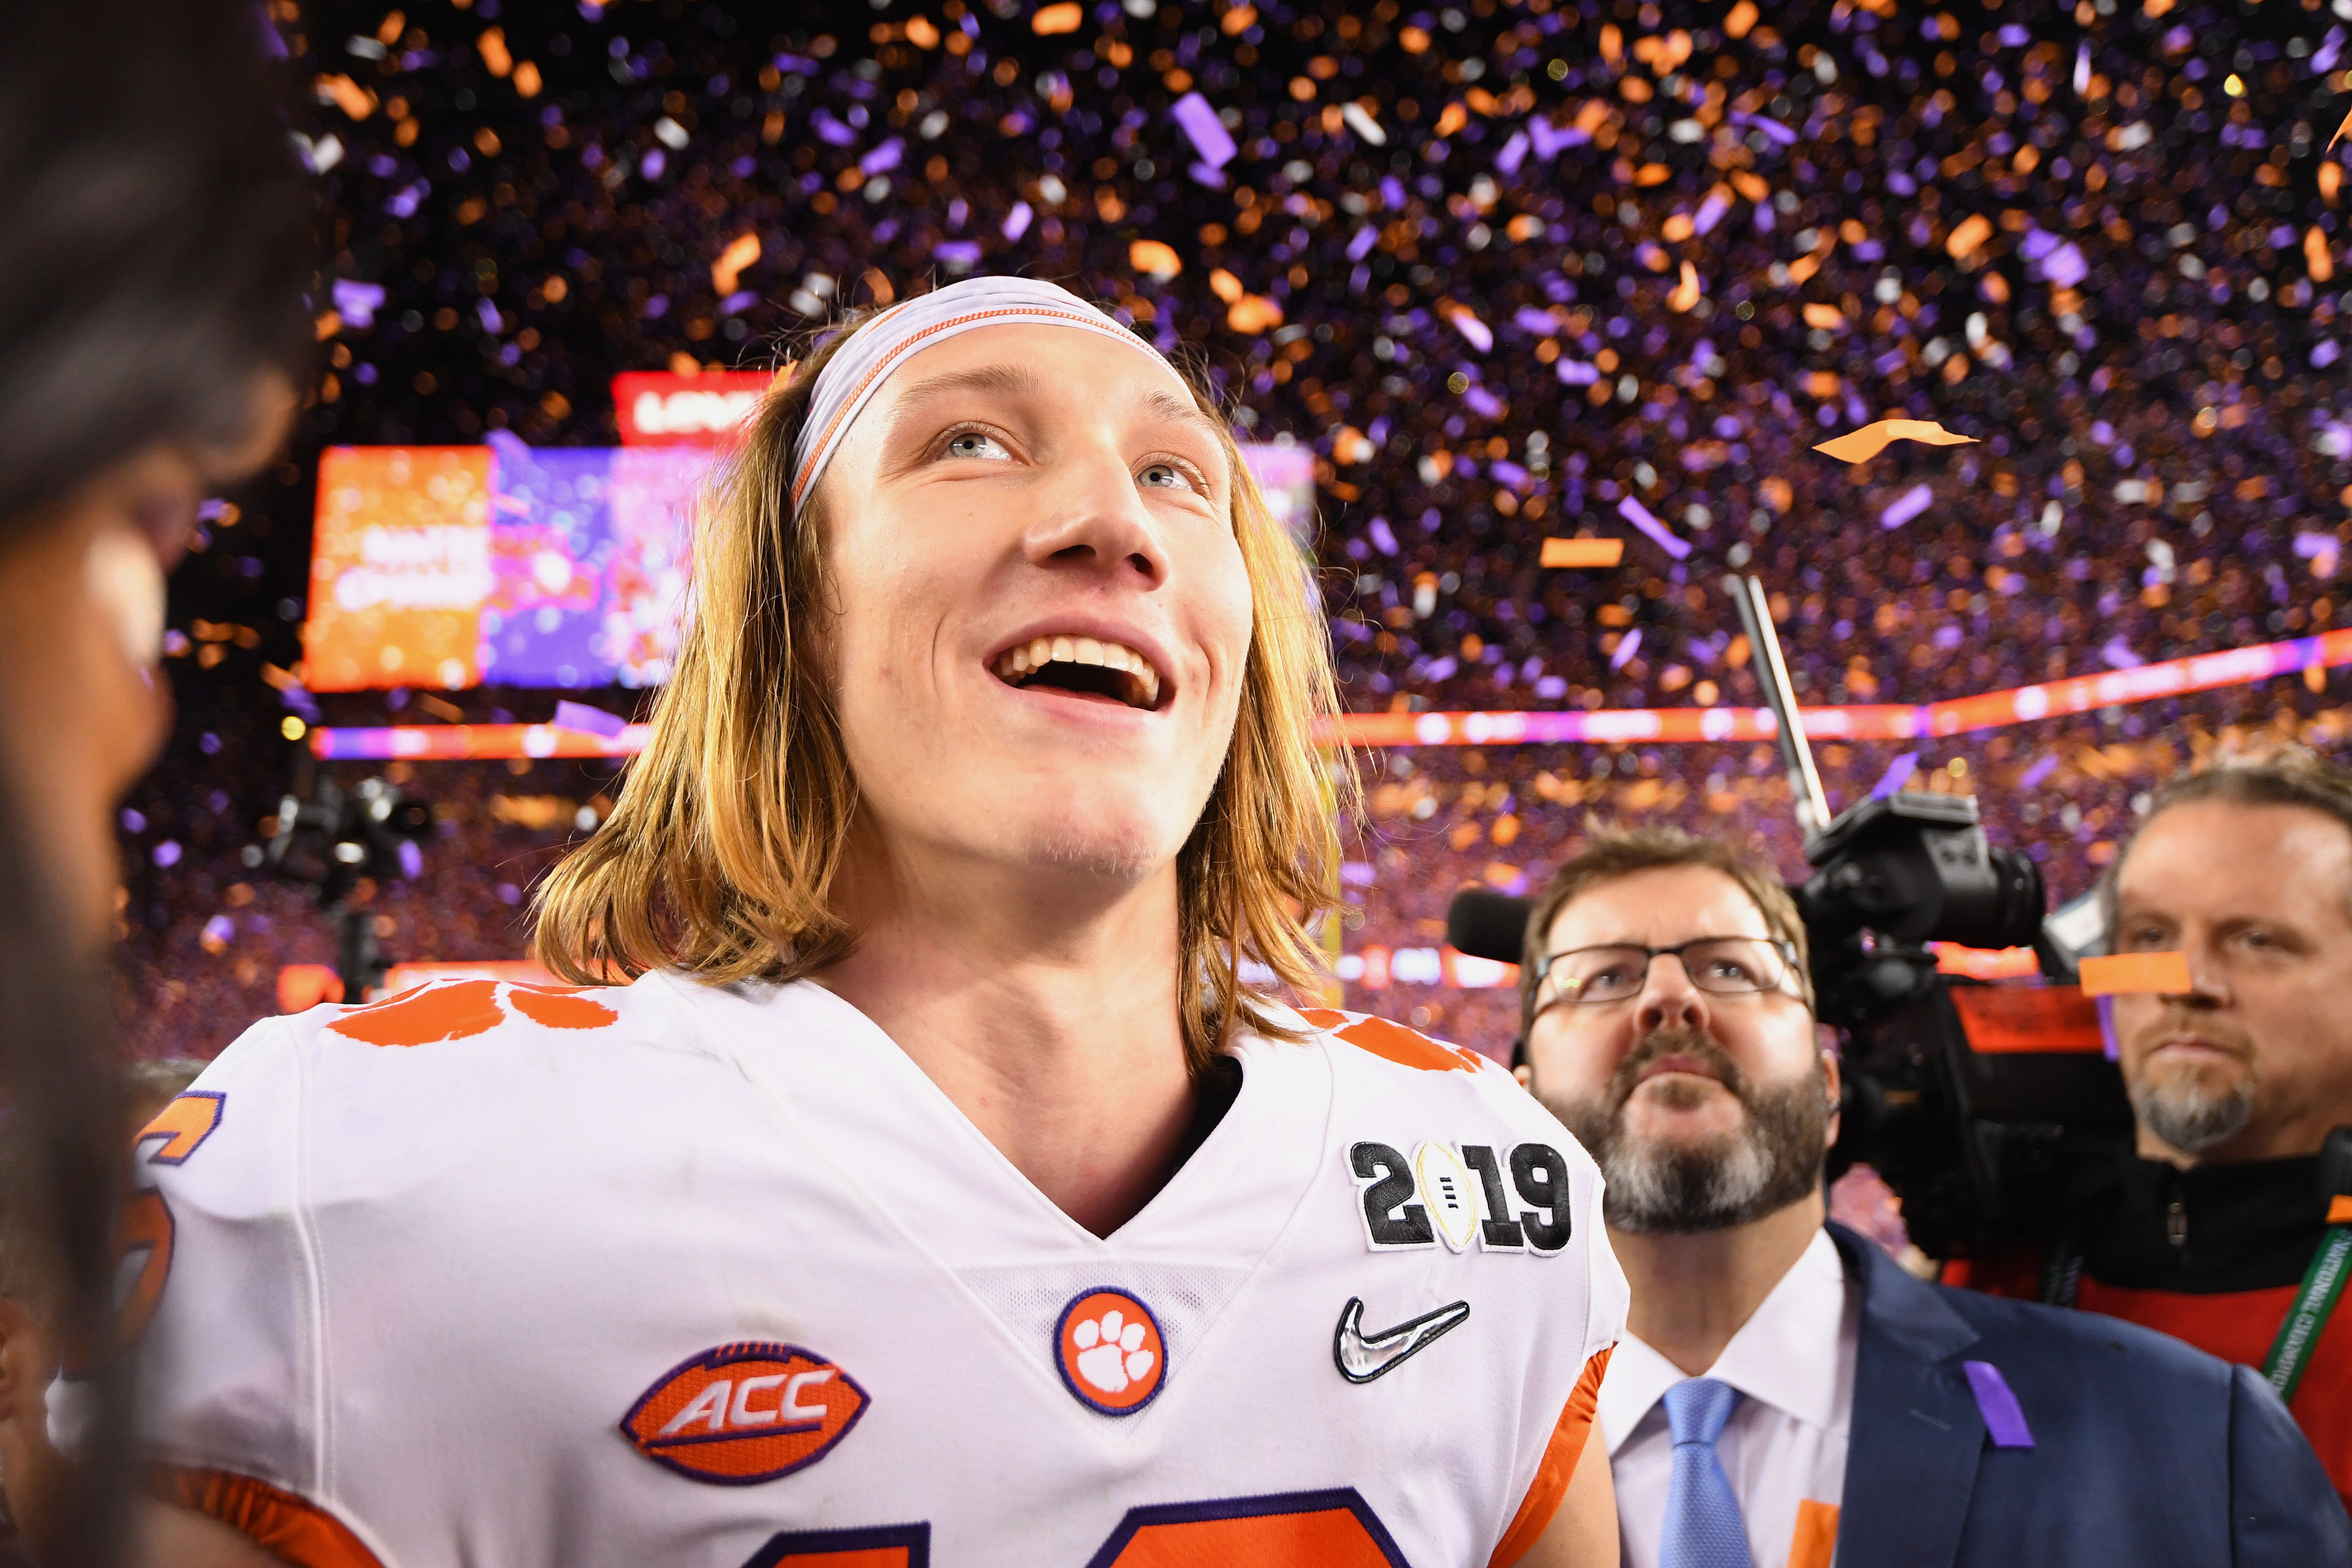 SANTA CLARA, CA - JANUARY 07: Trevor Lawrence #16 of the Clemson Tigers celebrates after defeating the Alabama Crimson Tide during the College Football Playoff National Championship held at Levi's Stadium on January 7, 2019 in Santa Clara, California. Clemson defeated Alabama 44-16. (Photo by Jamie Schwaberow/Getty Images)